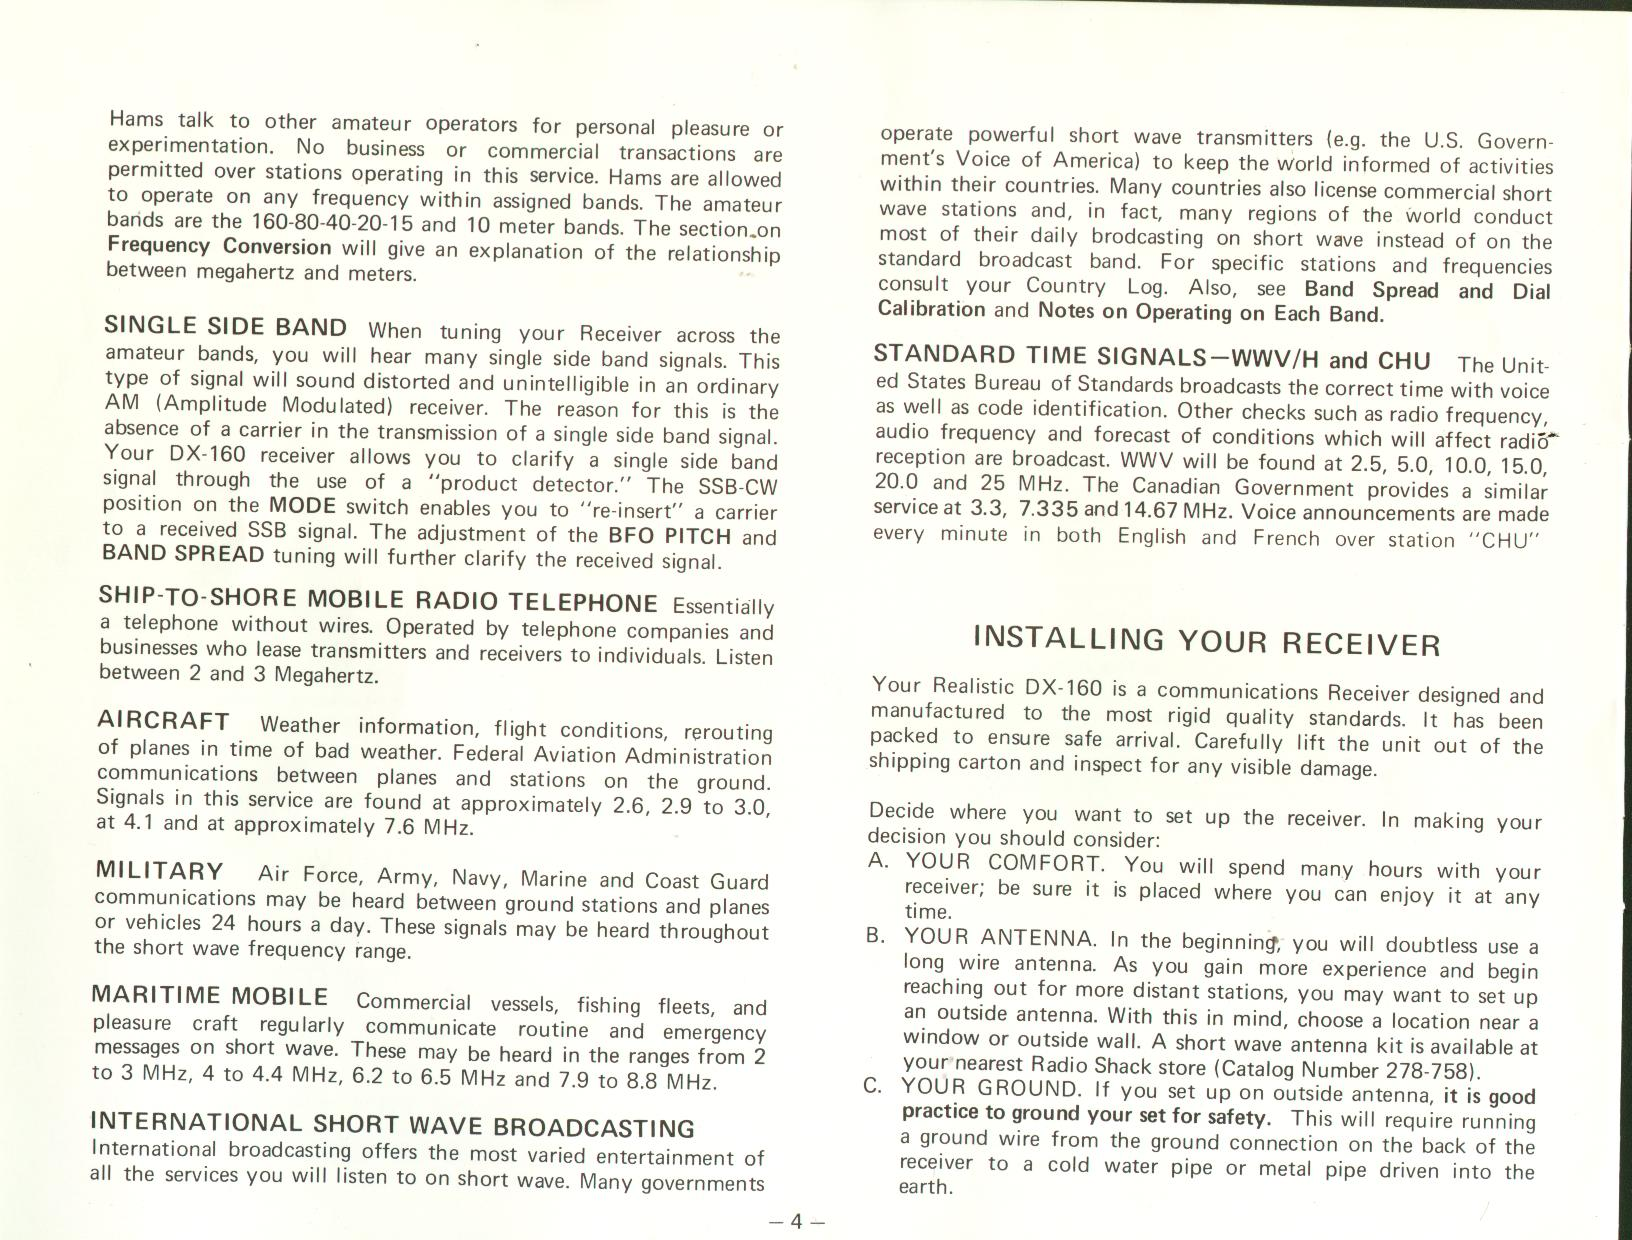 radio shack dx 390 owners manual